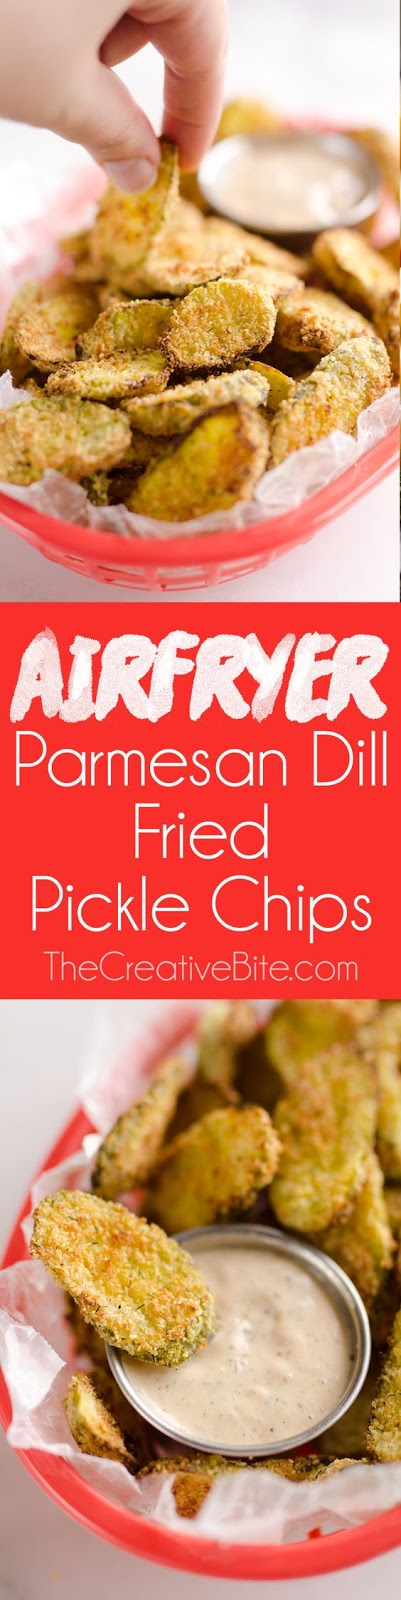 Airfryer Parmesan Dill Fried Pickle Chips